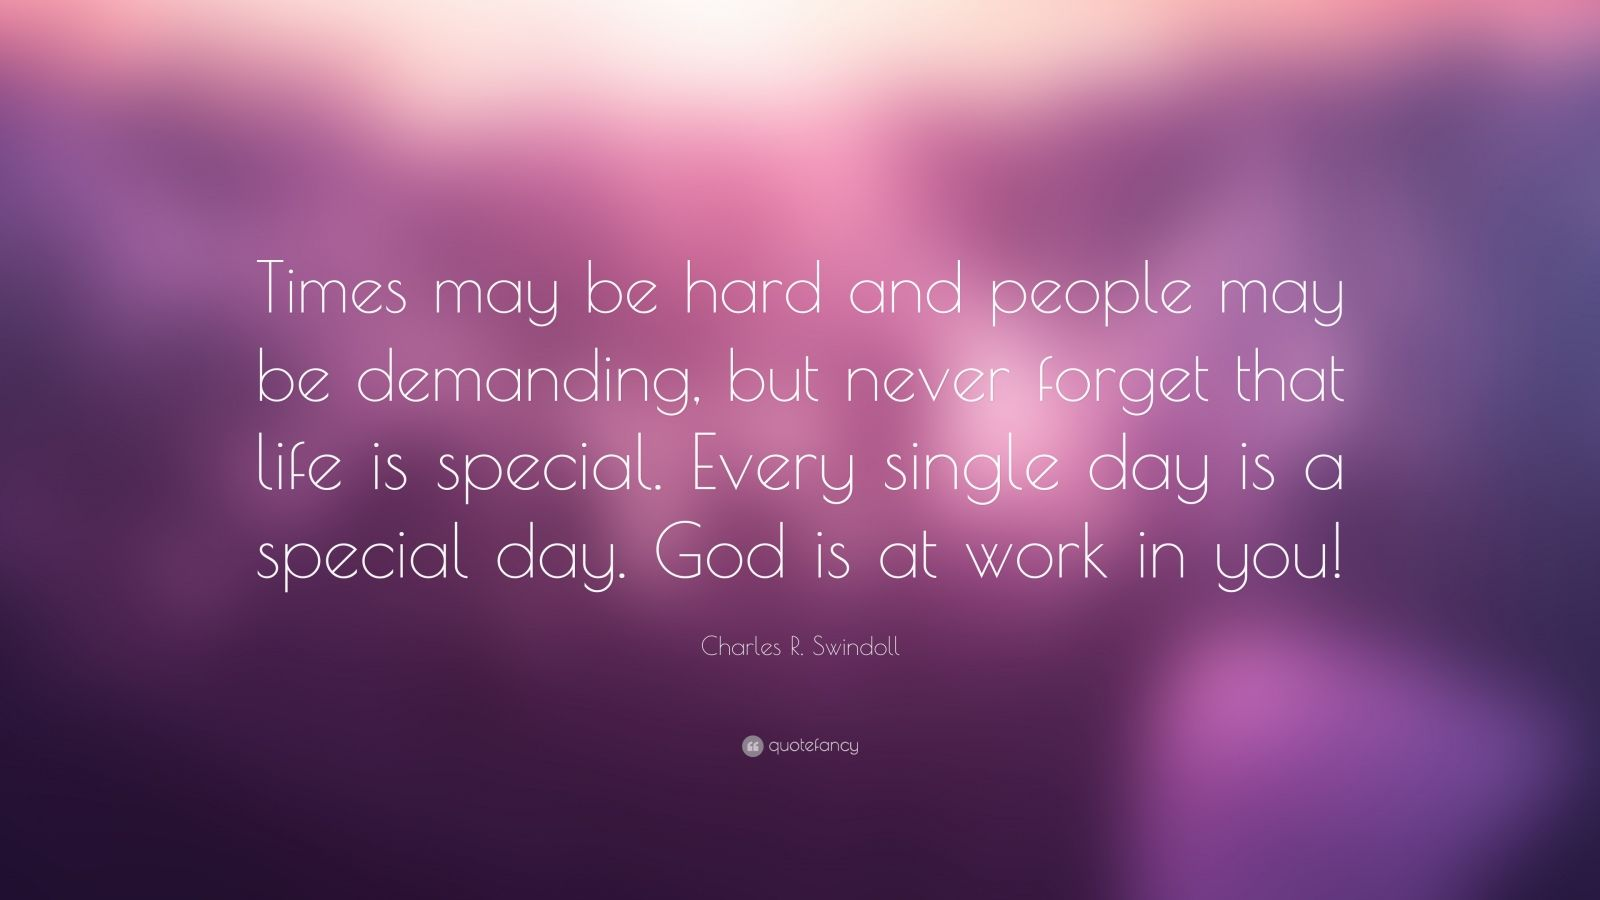 """Charles R. Swindoll Quote: """"Times may be hard and people may be demanding, but never forget that life is special. Every single day is a special day. God is at work in you!"""""""